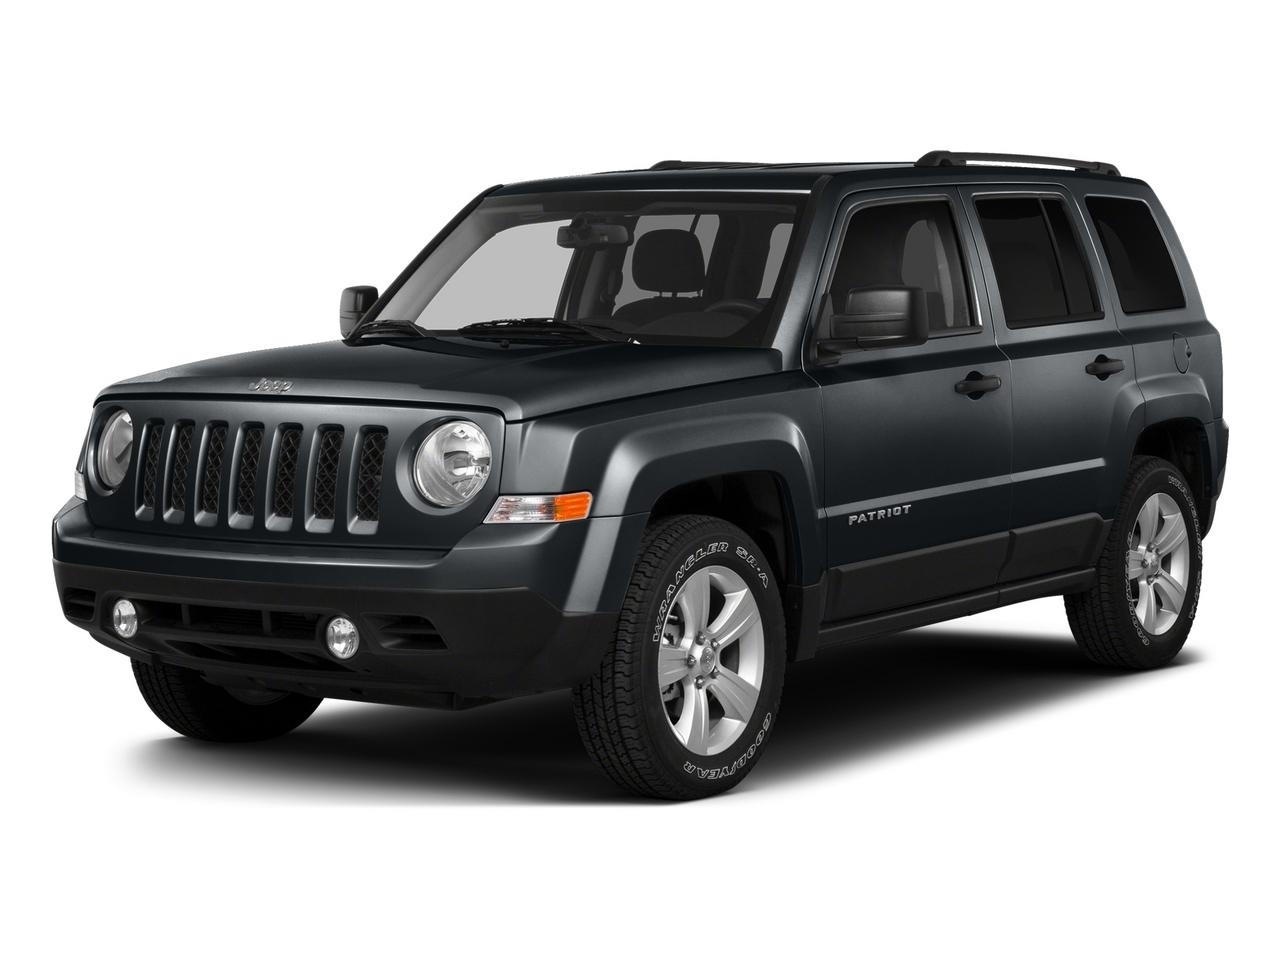 2015 Jeep Patriot Vehicle Photo in Allentown, PA 18103